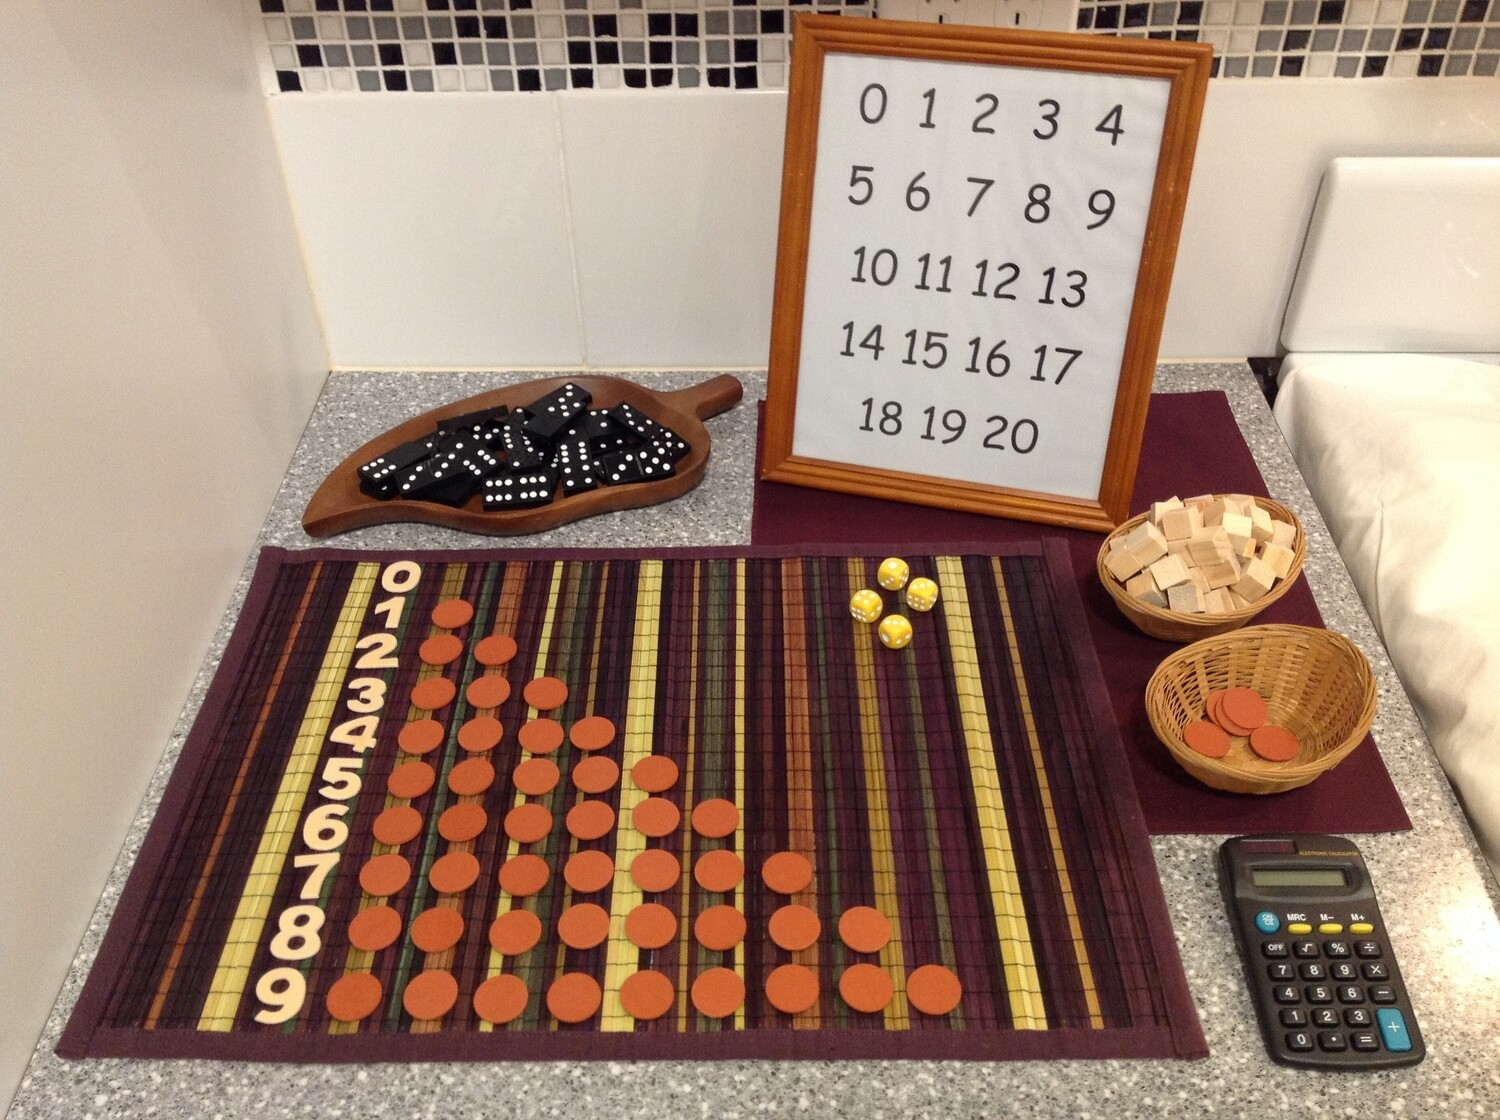 Number Play Set